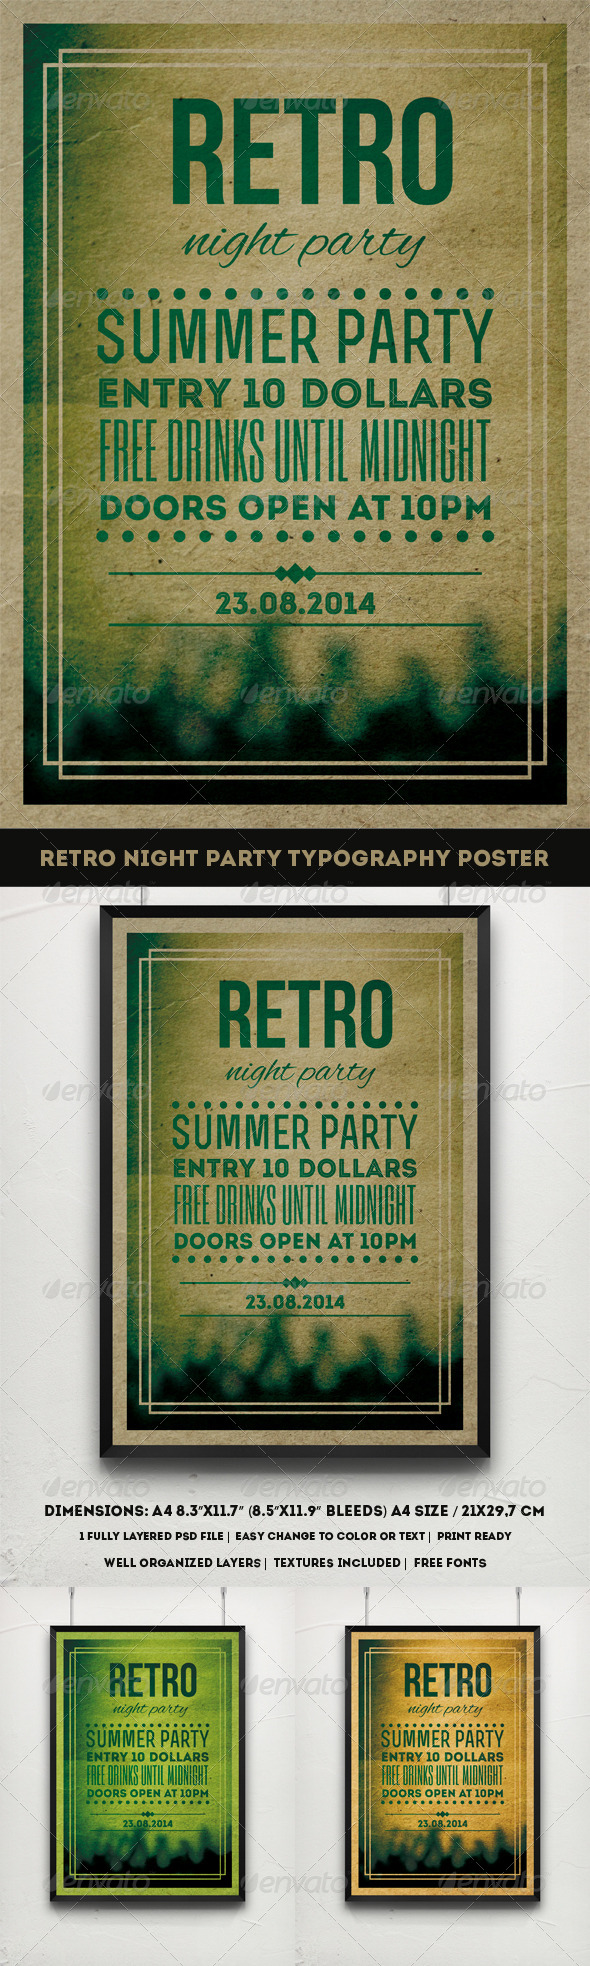 GraphicRiver Retro Night Party Typography Poster 8047667